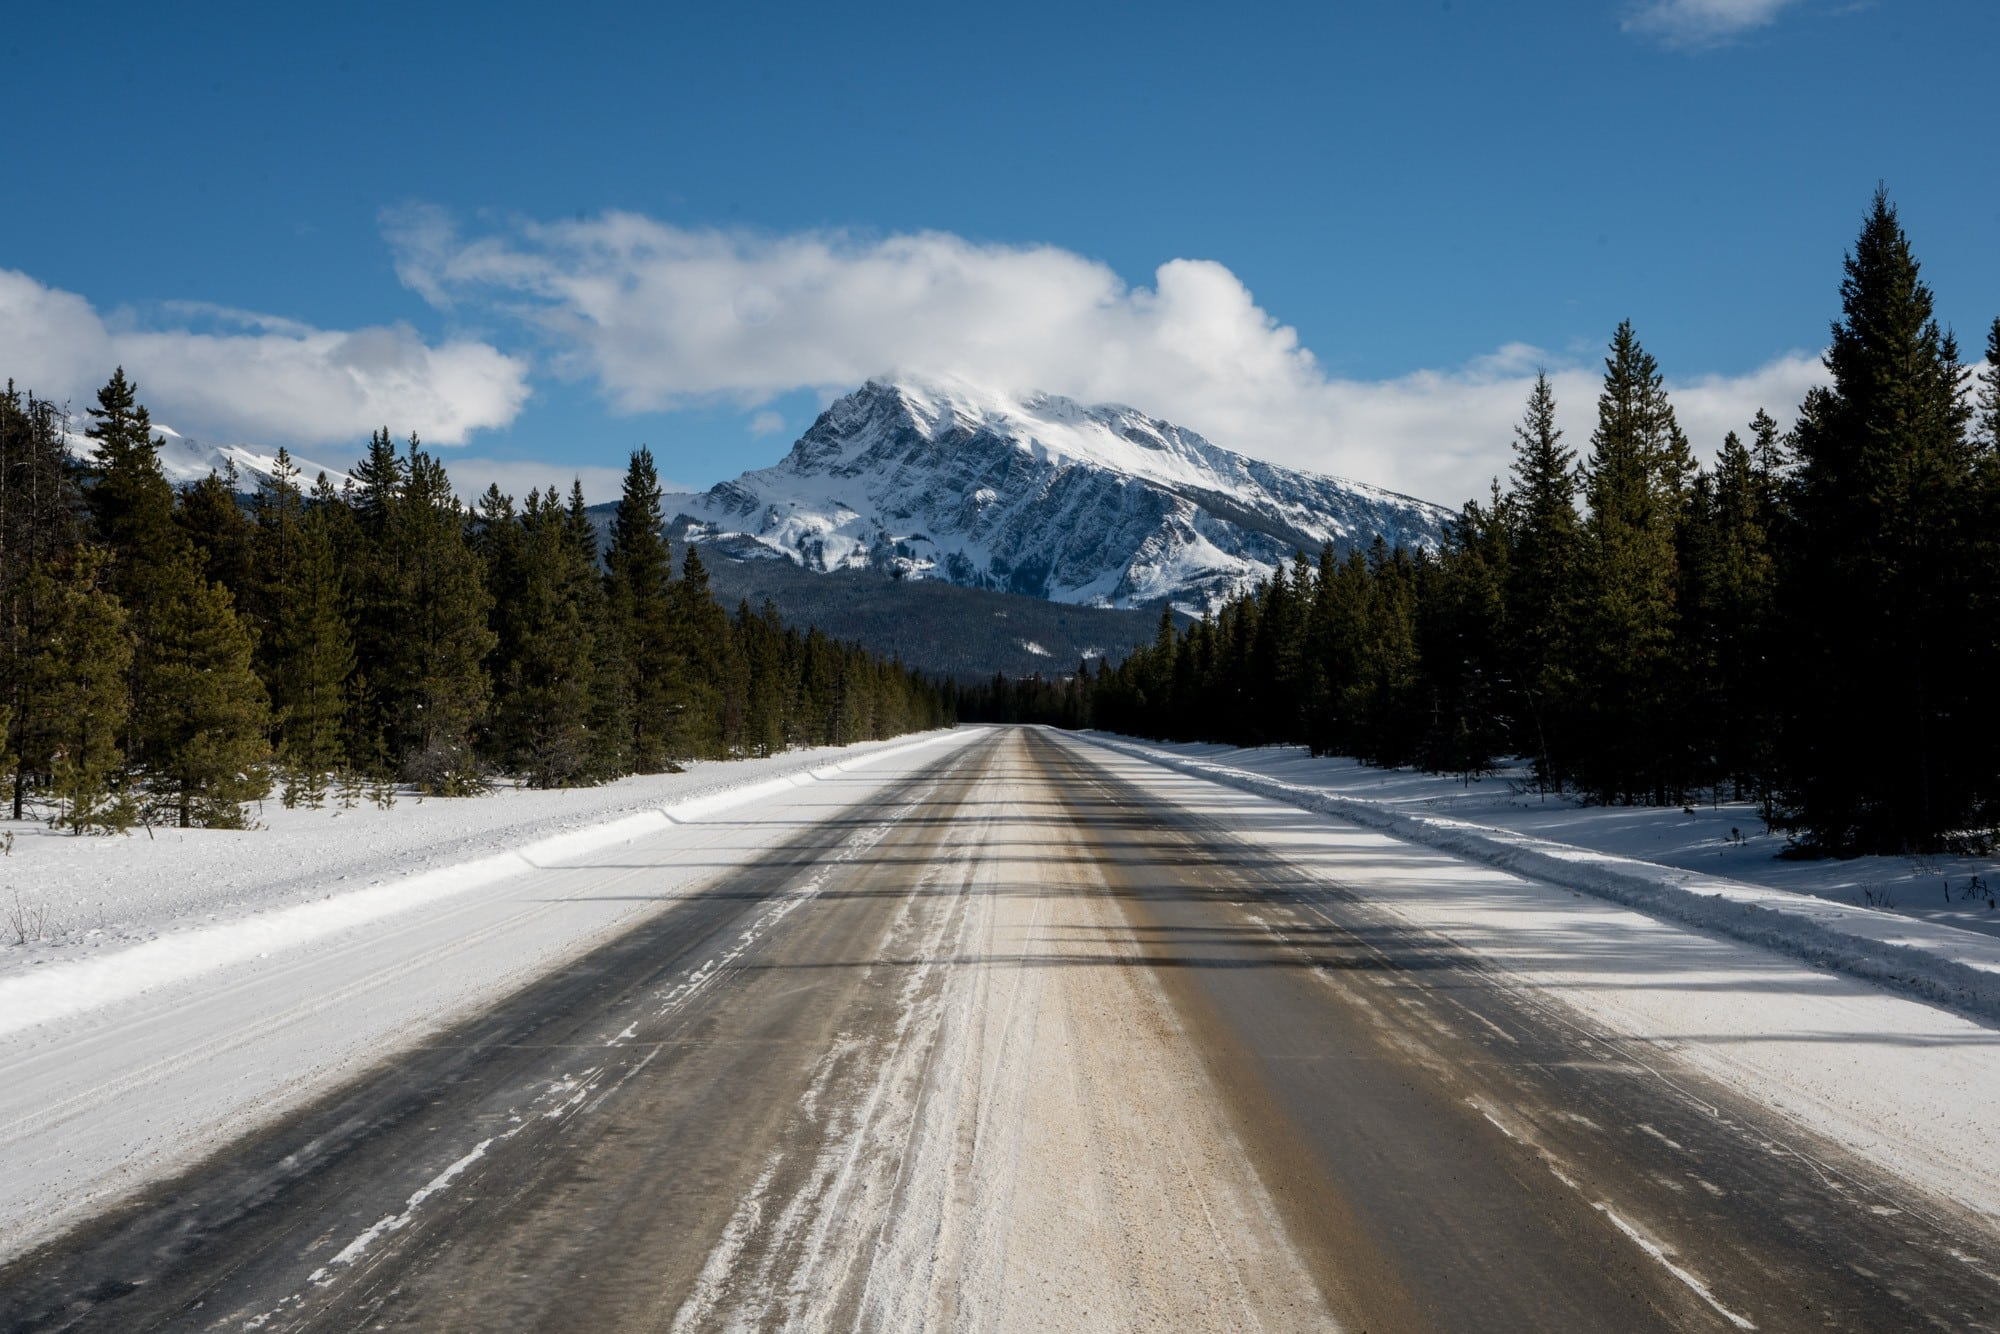 The Icefields Parkway in Jasper National Park